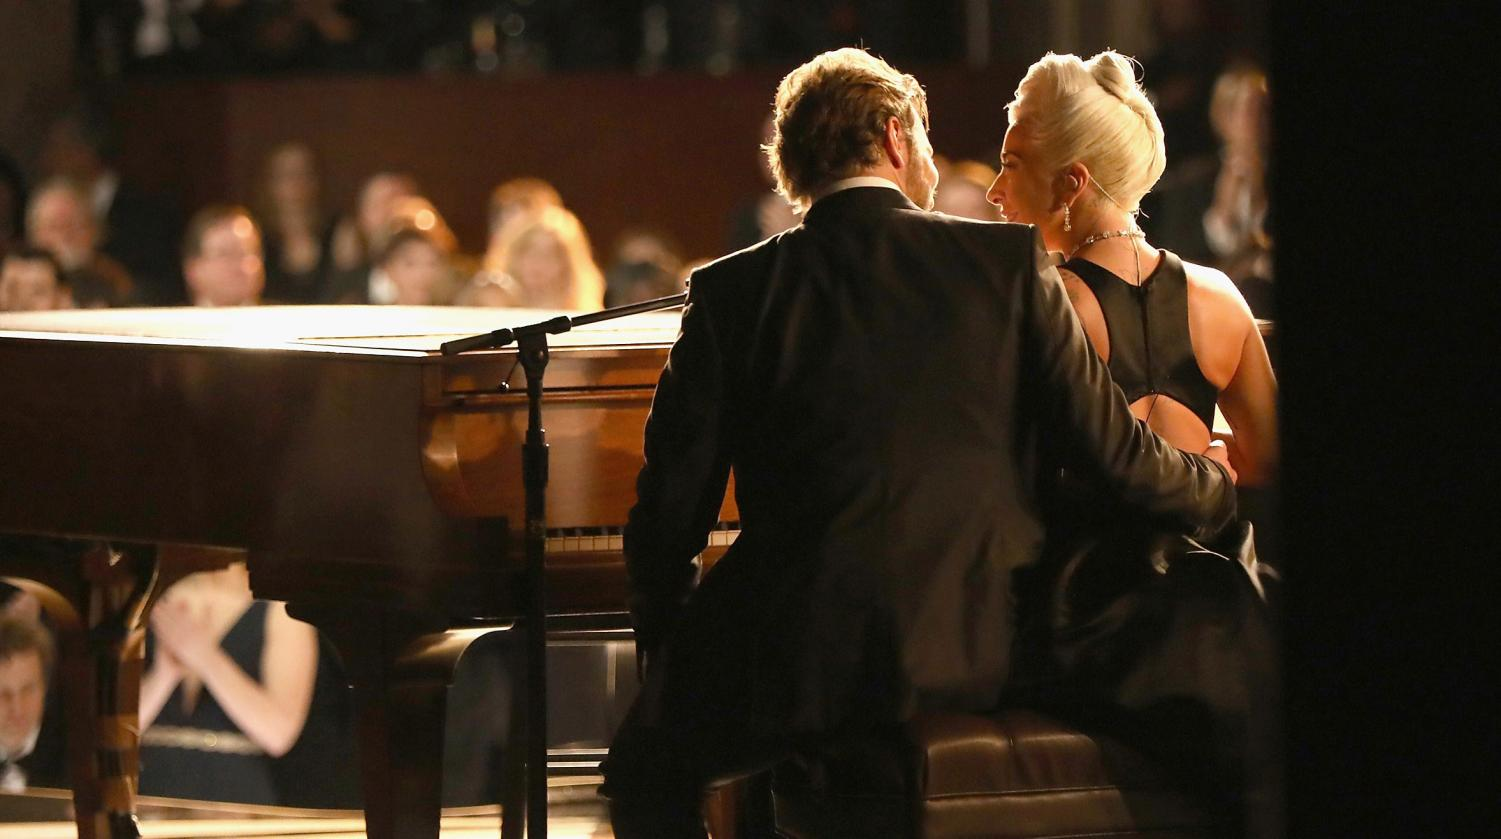 'Always remember us this way'// Last Sunday at the Oscars, Bradley Cooper and Lady Gaga gave their audience what they wanted: proof that there is more to their relationship than they say. For many, the show they put on, or more so short movie, was enough to show that faith had brought them to that very piano bench on purpose.